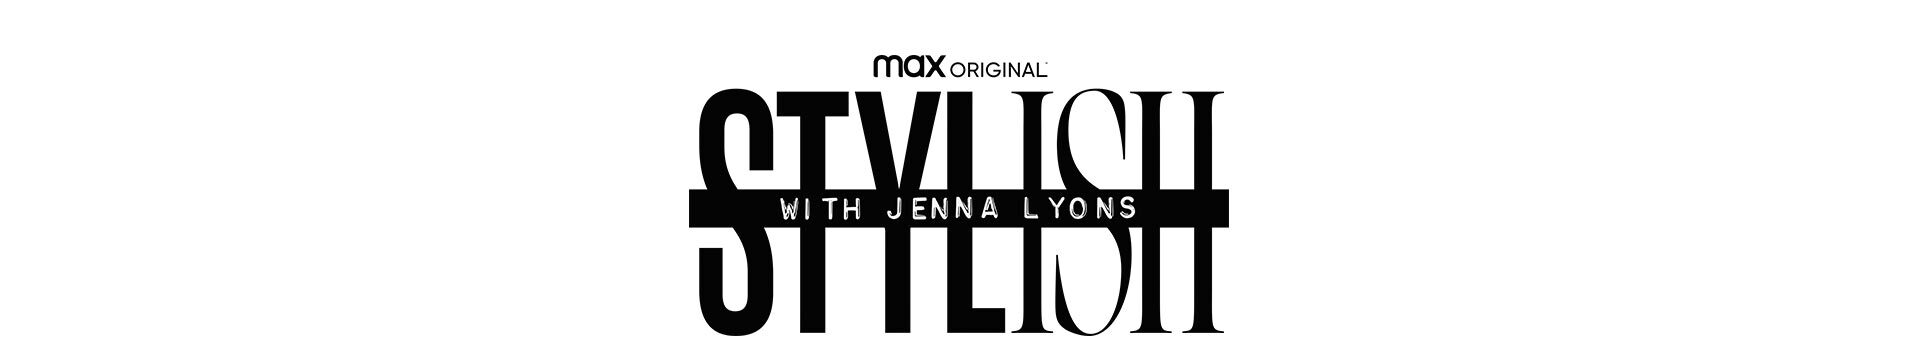 Stylish with Jenna Lyons Banner Logo with Max original